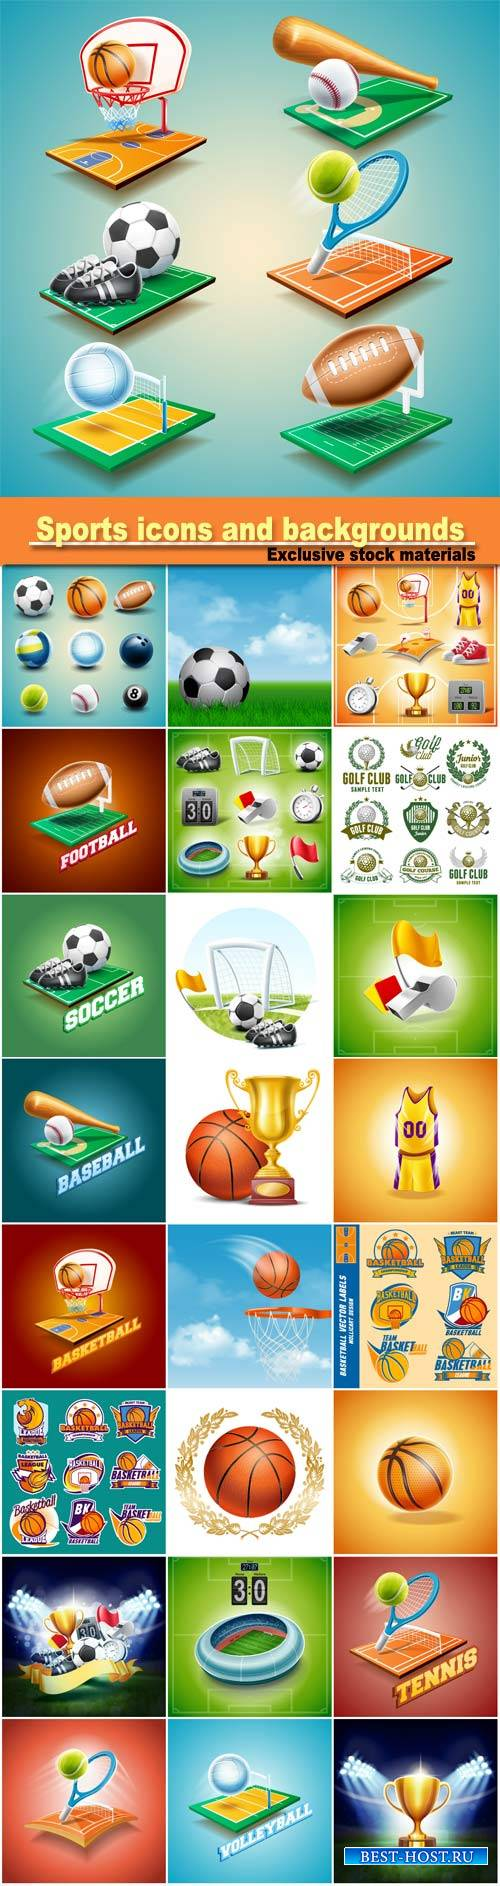 Sports icons and backgrounds vector, football, basketball, golf, baseball